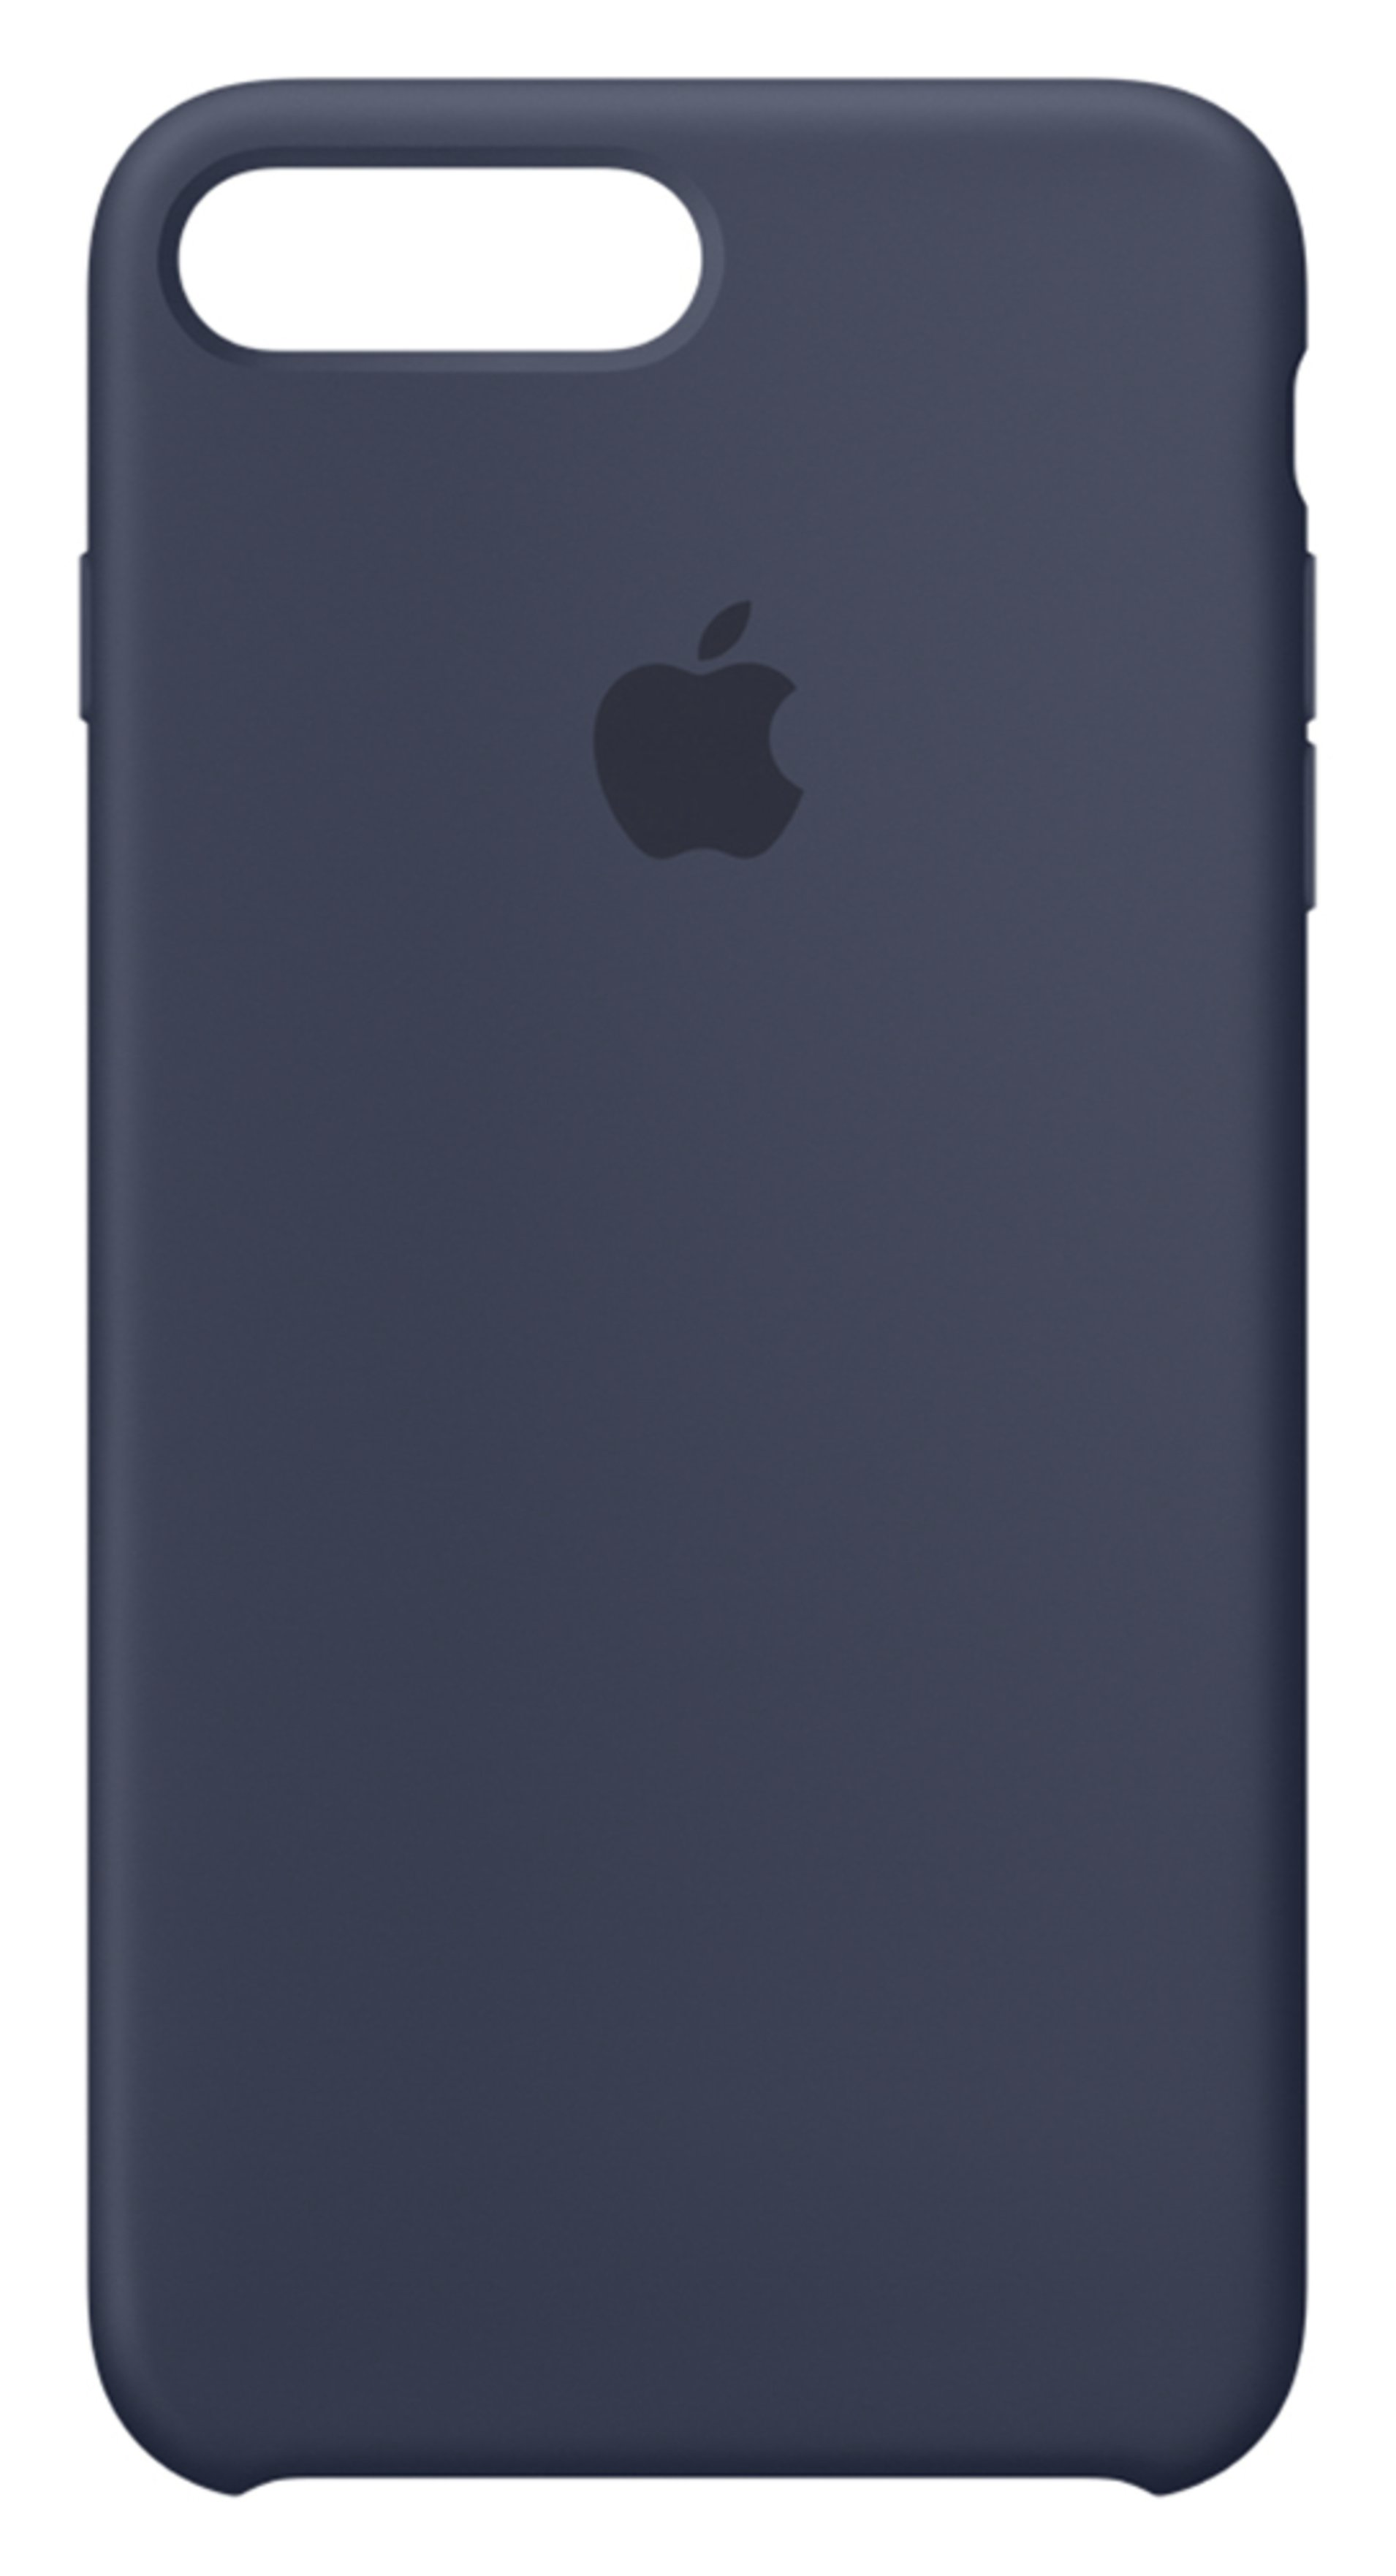 Apple iPhone 8+/ 7+ Silicone Case - Midnight Blue cheapest retail price